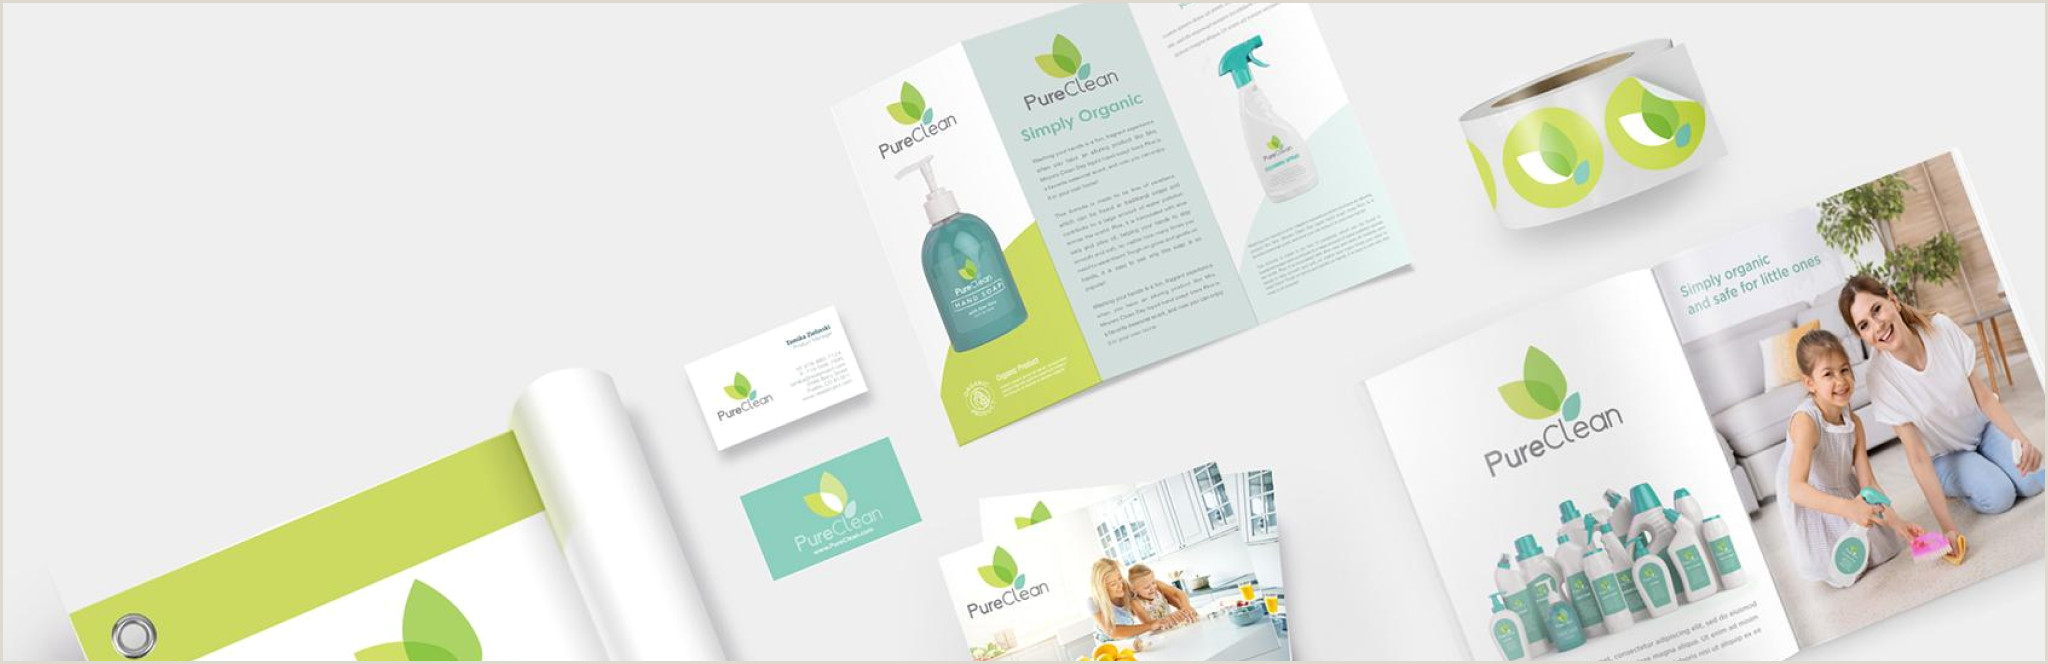 Best Inexpensive Business Cards Printplace High Quality Line Printing Services